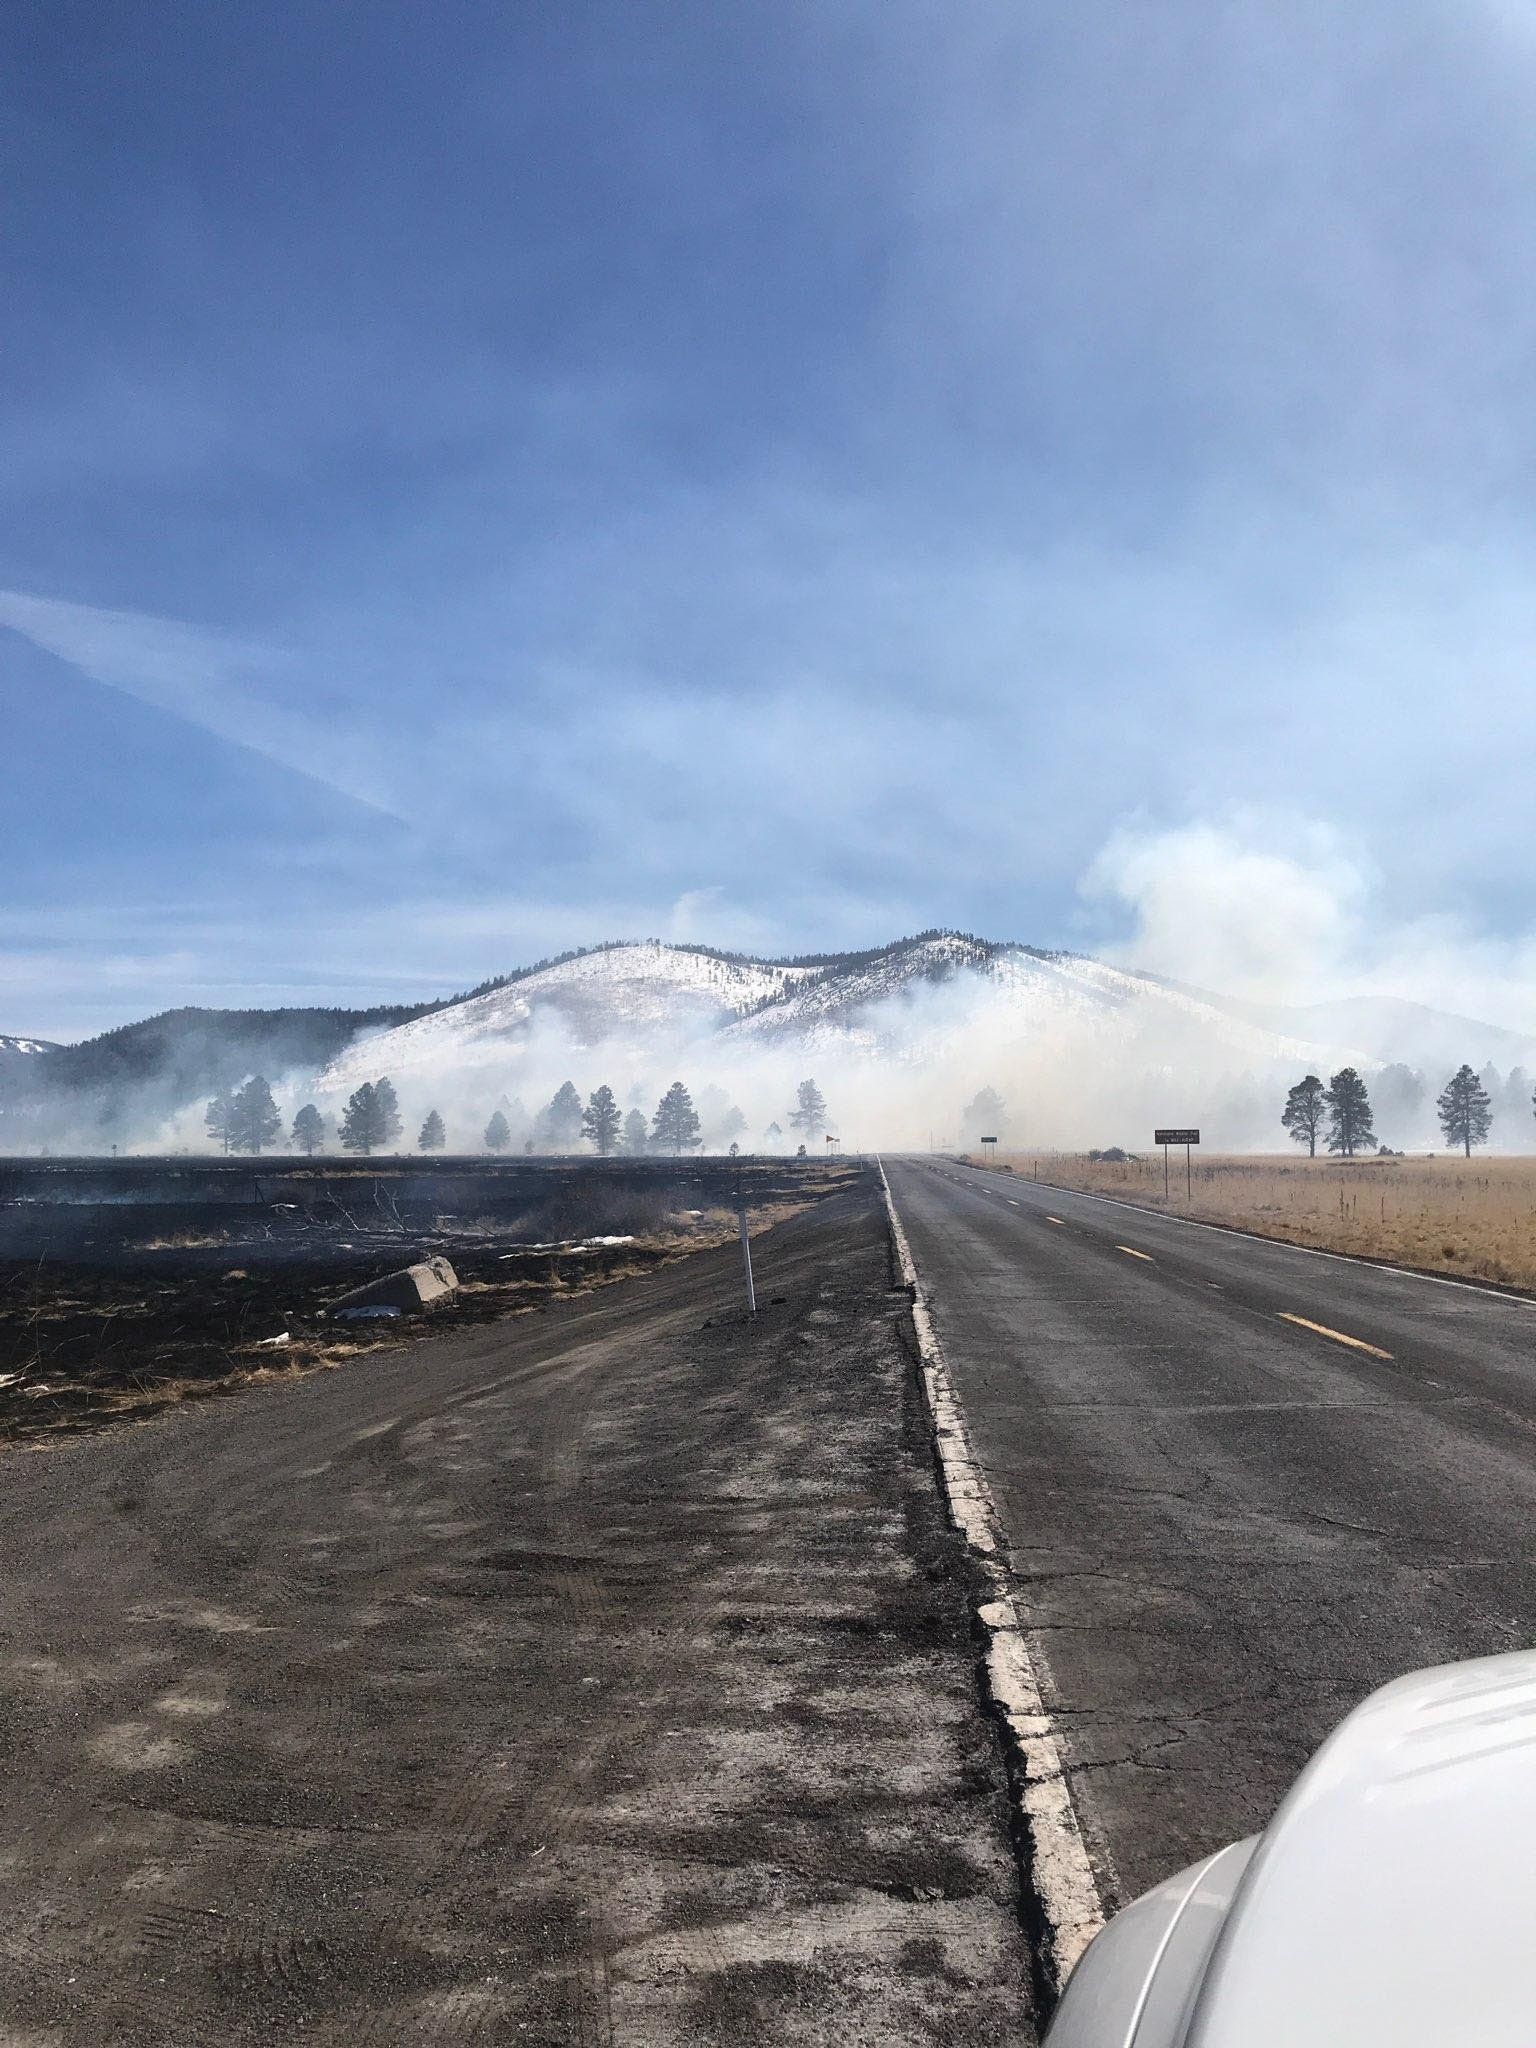 U.S. Forest Service officials say the fire began shortly after noon Tuesday, but crews stopped its spread by 5:30 p.m. at an estimated 335 acres (about half a square mile). (Source: U.S. Forest Services)